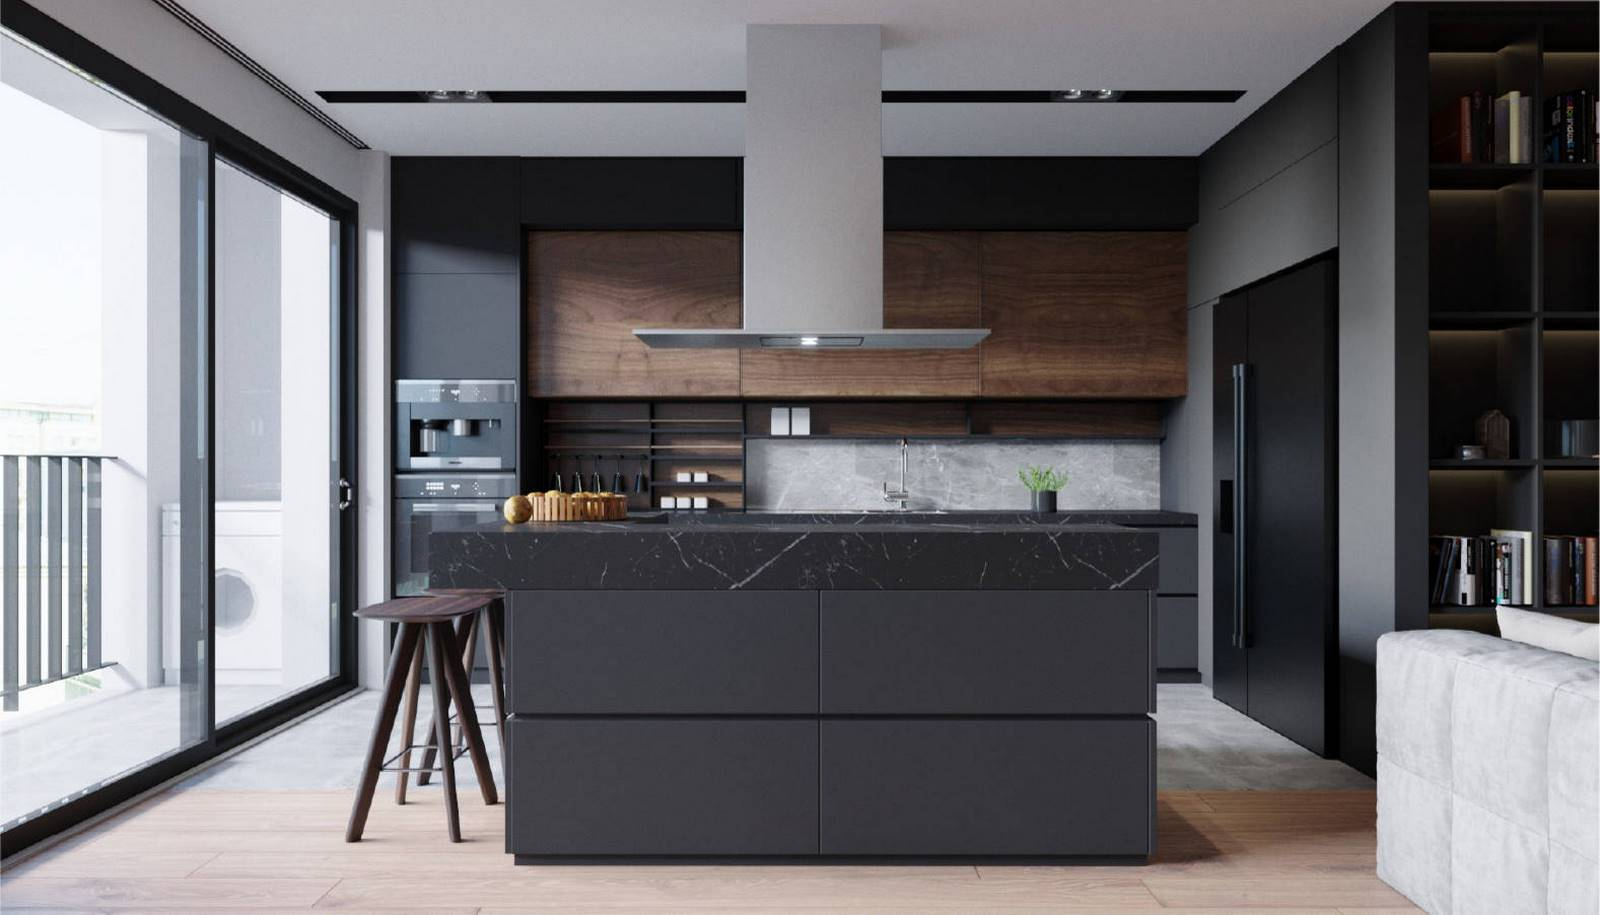 Despite the fact that black and its shades prevail in the interior design of this kitchen, the room does not seem too gloomy thanks to the wide windows, through which sunlight easily penetrates the space of the room. In addition, the room is equipped with a few different types of lighting, including elegant miniature fixtures embedded in the ceiling, stylish pendant lights positioned directly above the kitchen island, as well as a few beautiful fixtures embedded in hanging kitchen cabinets. If you wish your kitchen looked like this one, be certain to contact Grandeur Hills Group interior designers who are sure to make your kitchen stand out!